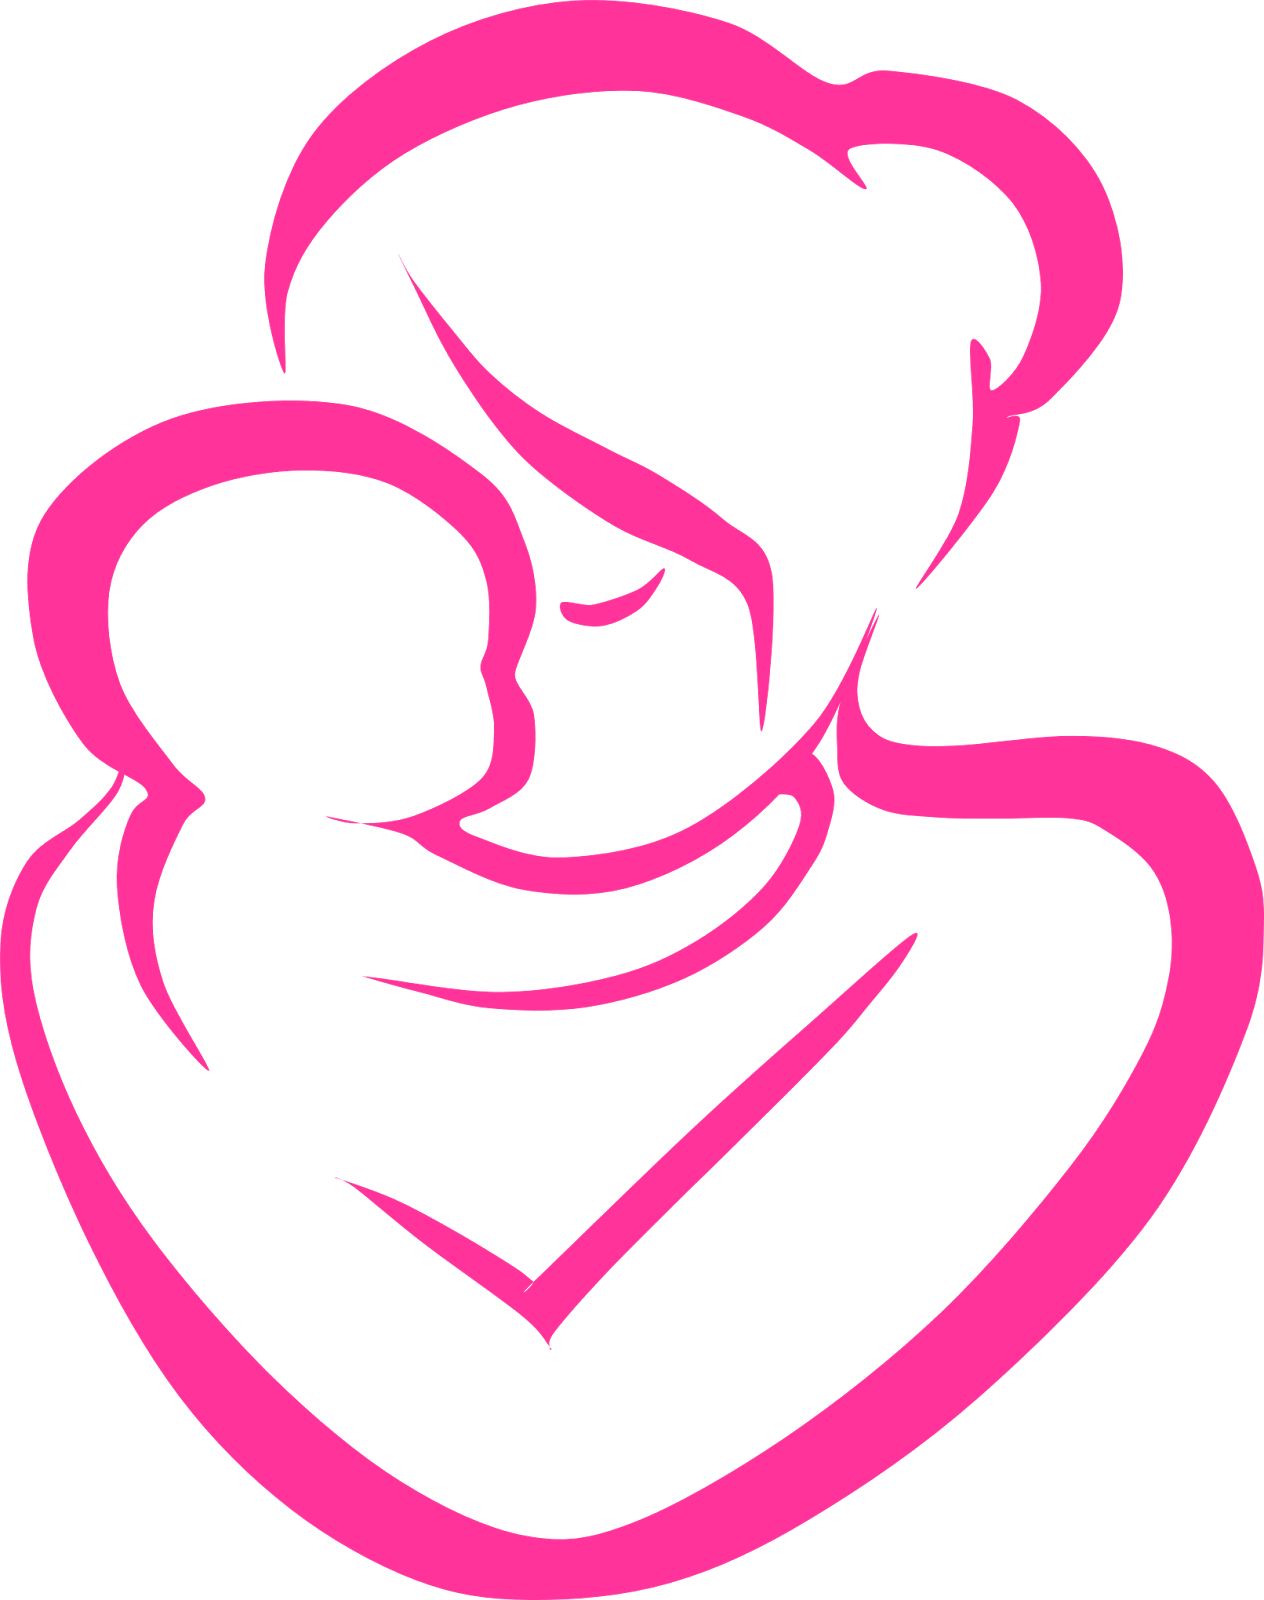 Mom and kid in car clipart image black and white download Mother and Child Clipart4 | Free Cliparts | Pinterest image black and white download